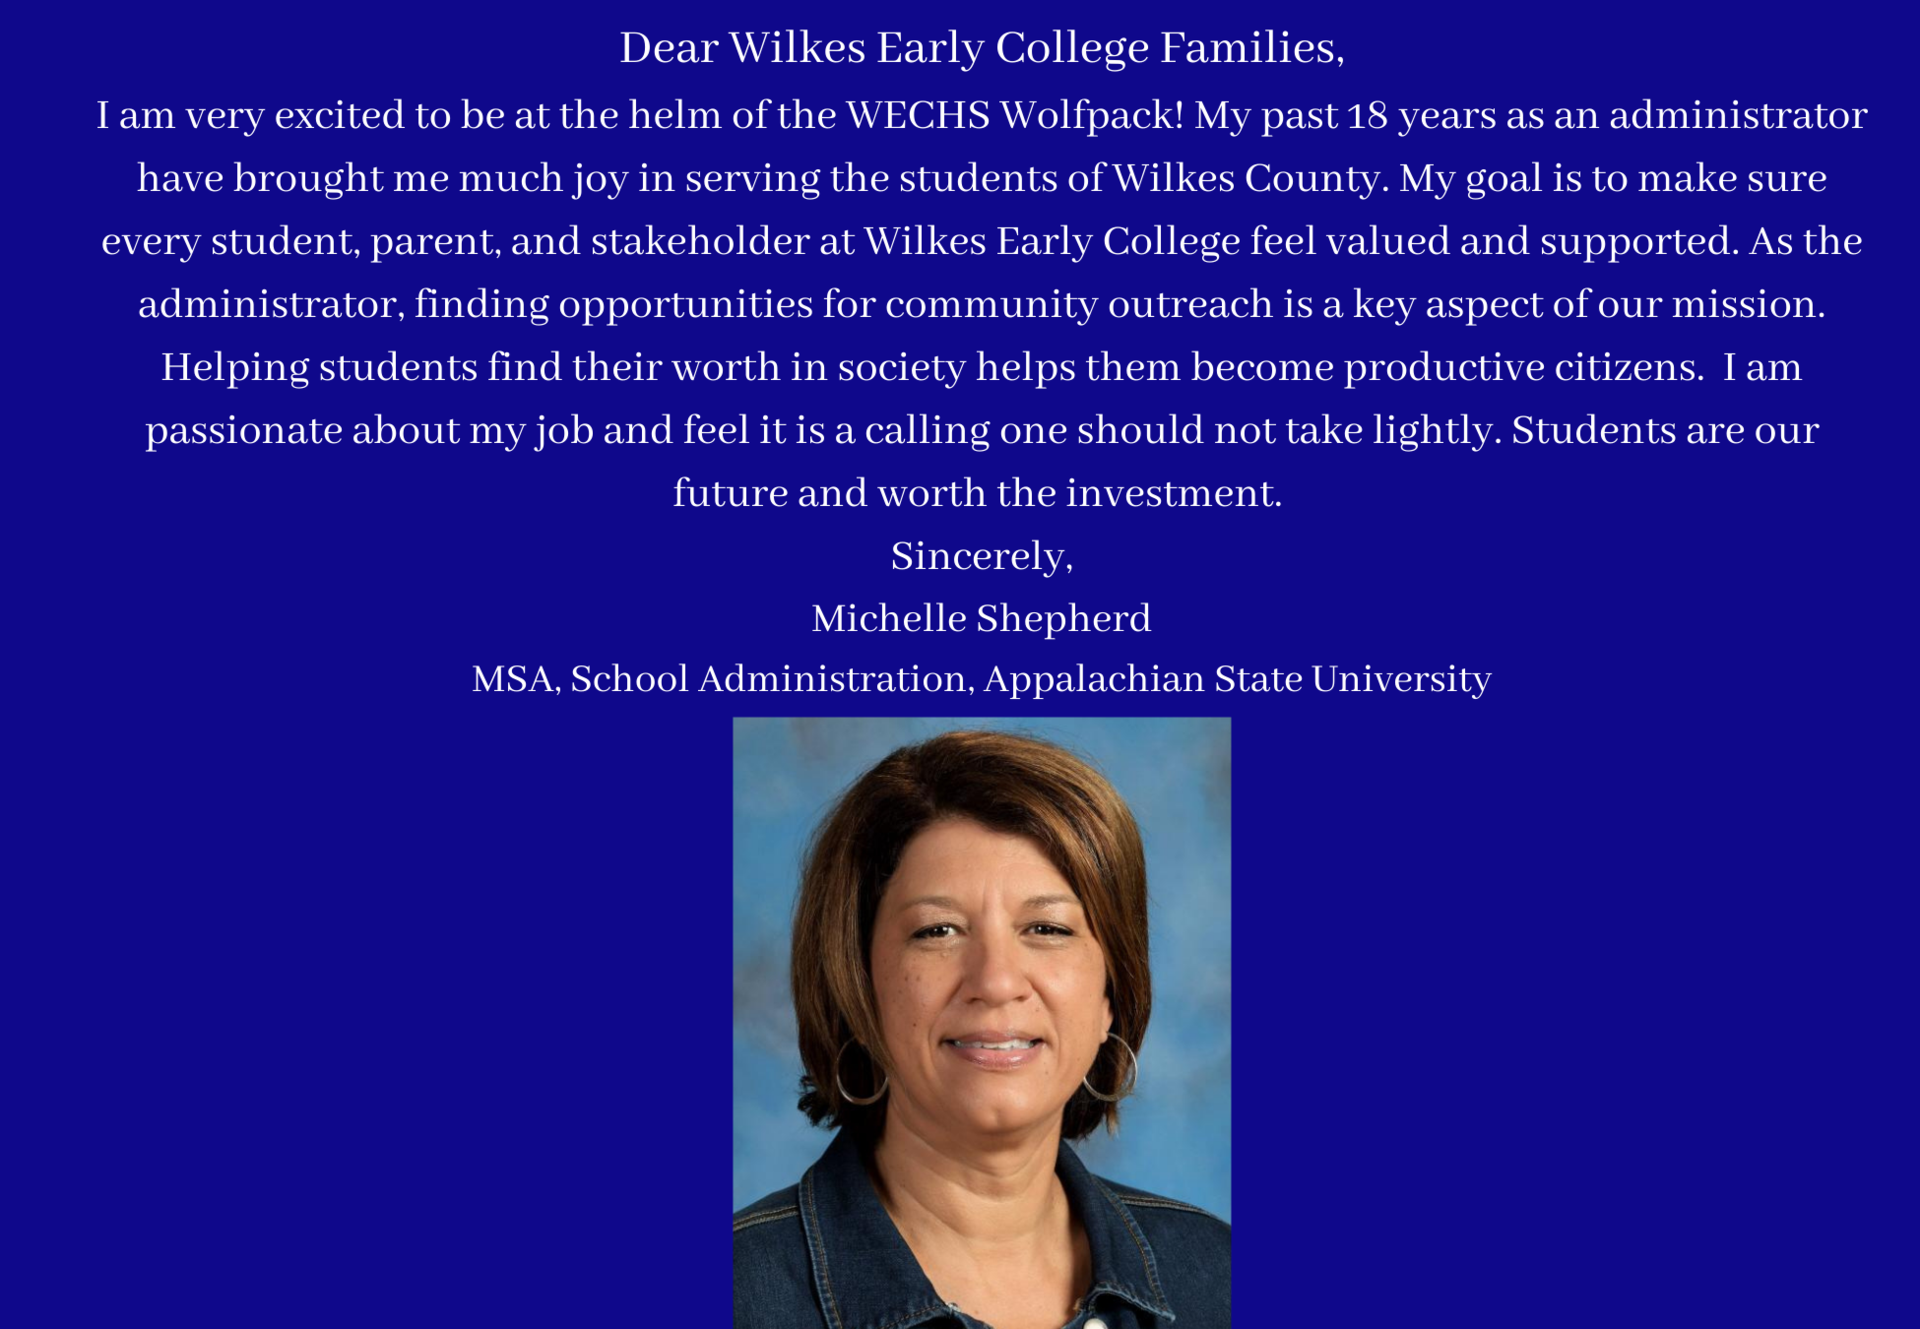 Dear Wilkes Early College Families, I am very excited to be at the helm of the WECHS Wolfpack! My past 18 years as an administrator have brought me much joy in serving the students of Wilkes County. My goal is to make sure every student, parent, and stakeholder at Wilkes Early College feel valued and supported. As the administrator, finding opportunities for community outreach is a key aspect of our mission. Helping students find their worth in society helps them become productive citizens.  I am passionate about my job and feel it is a calling one should not take lightly. Students are our future and worth the investment.  Sincerely, Michelle Shepherd MSA, School Administration, Appalachian State University